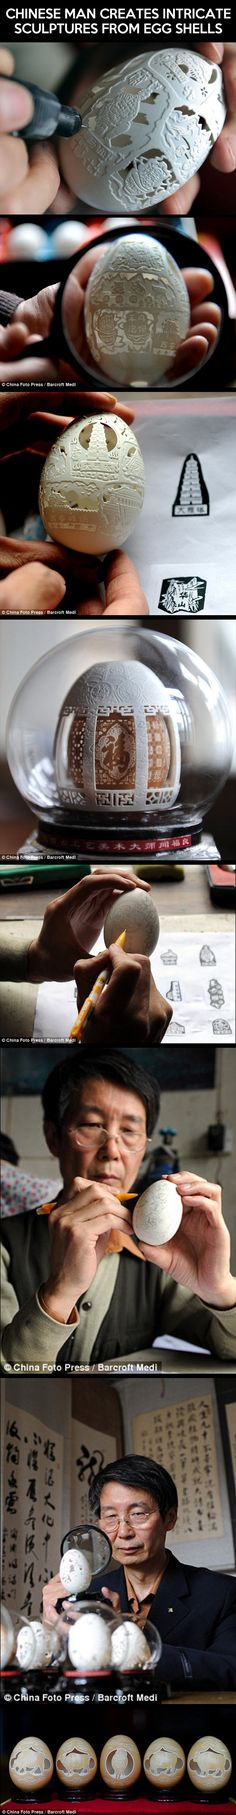 amazing intricate easter egg art sculptures , how does he manage to make such detailed designs Intricate sculptures from egg shells…